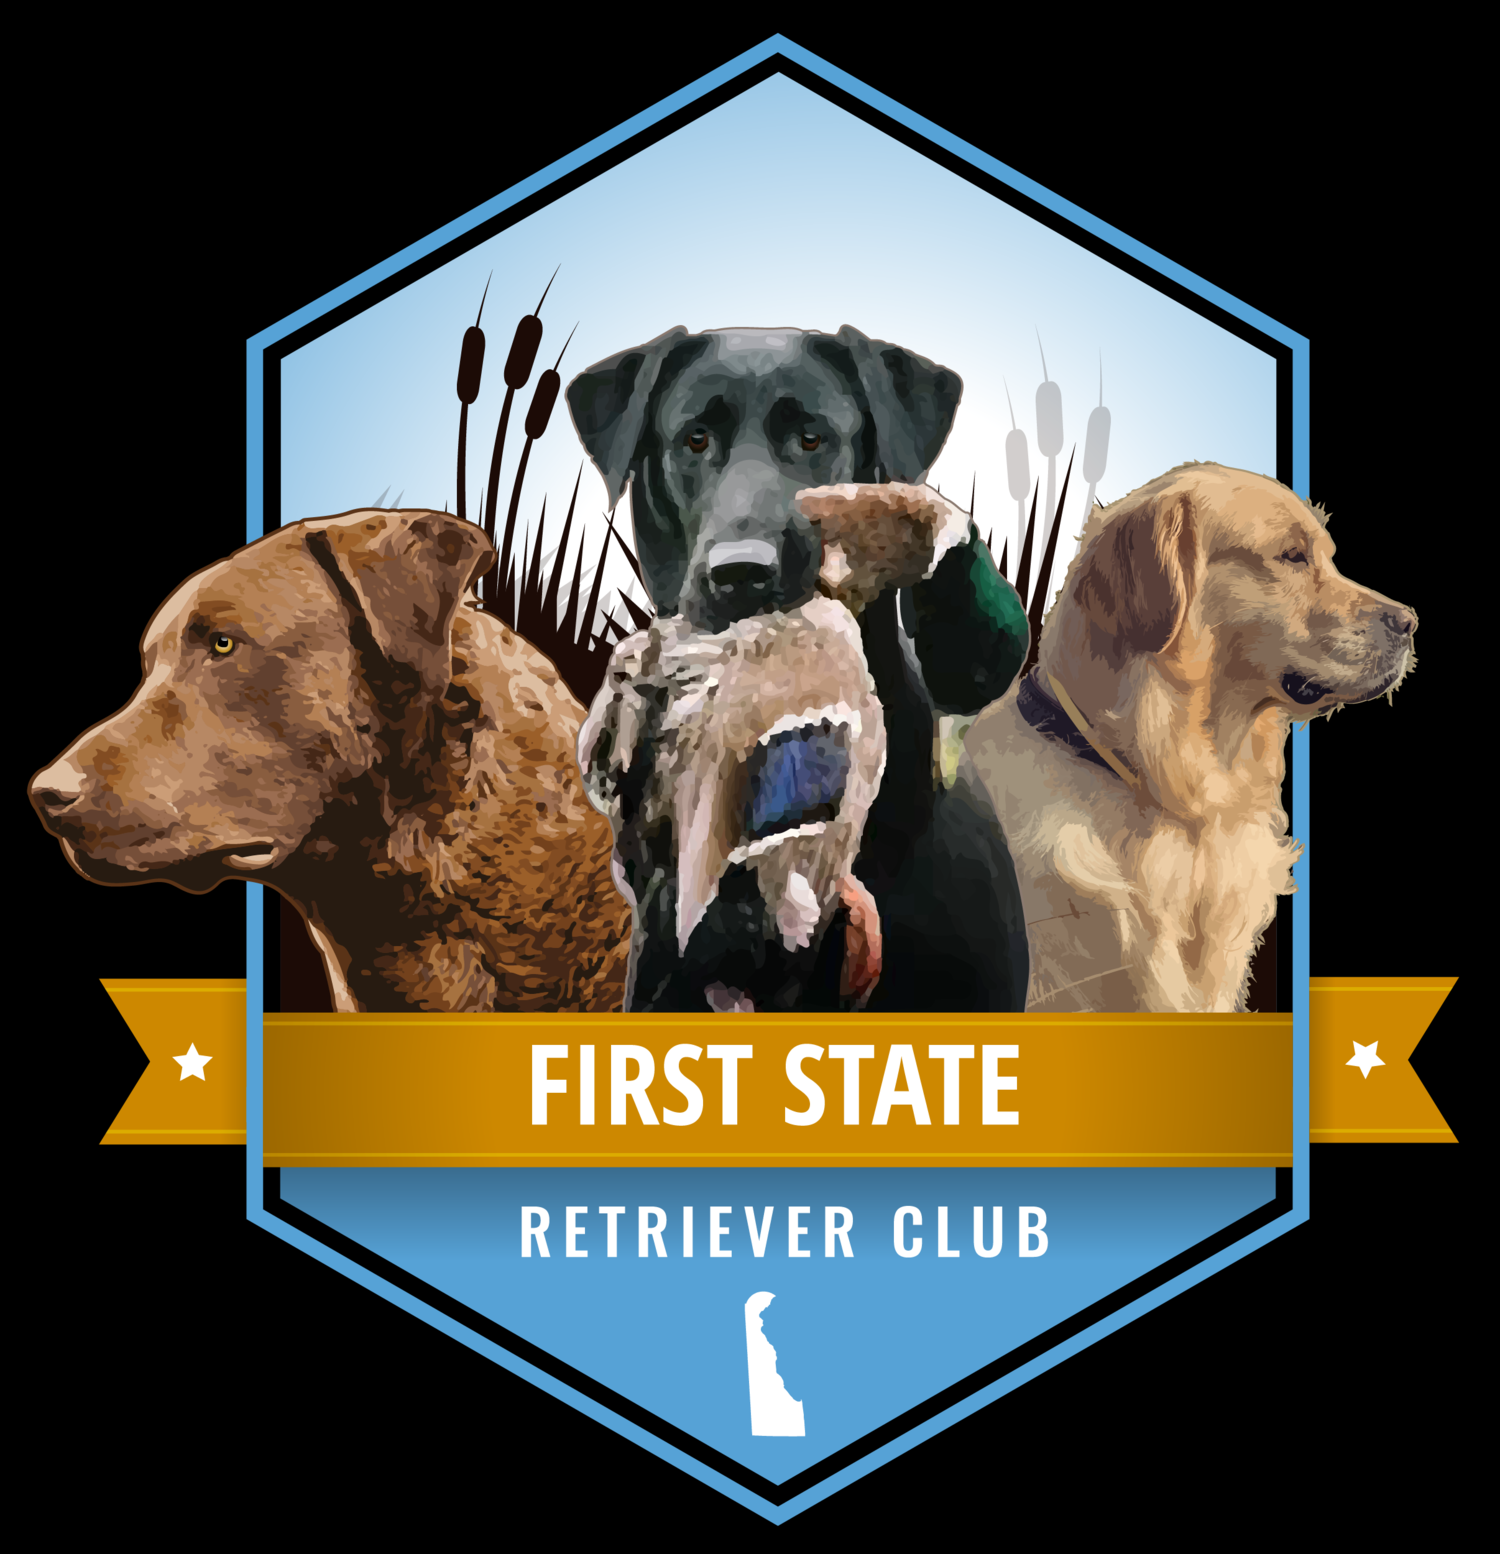 First State Retriever Club